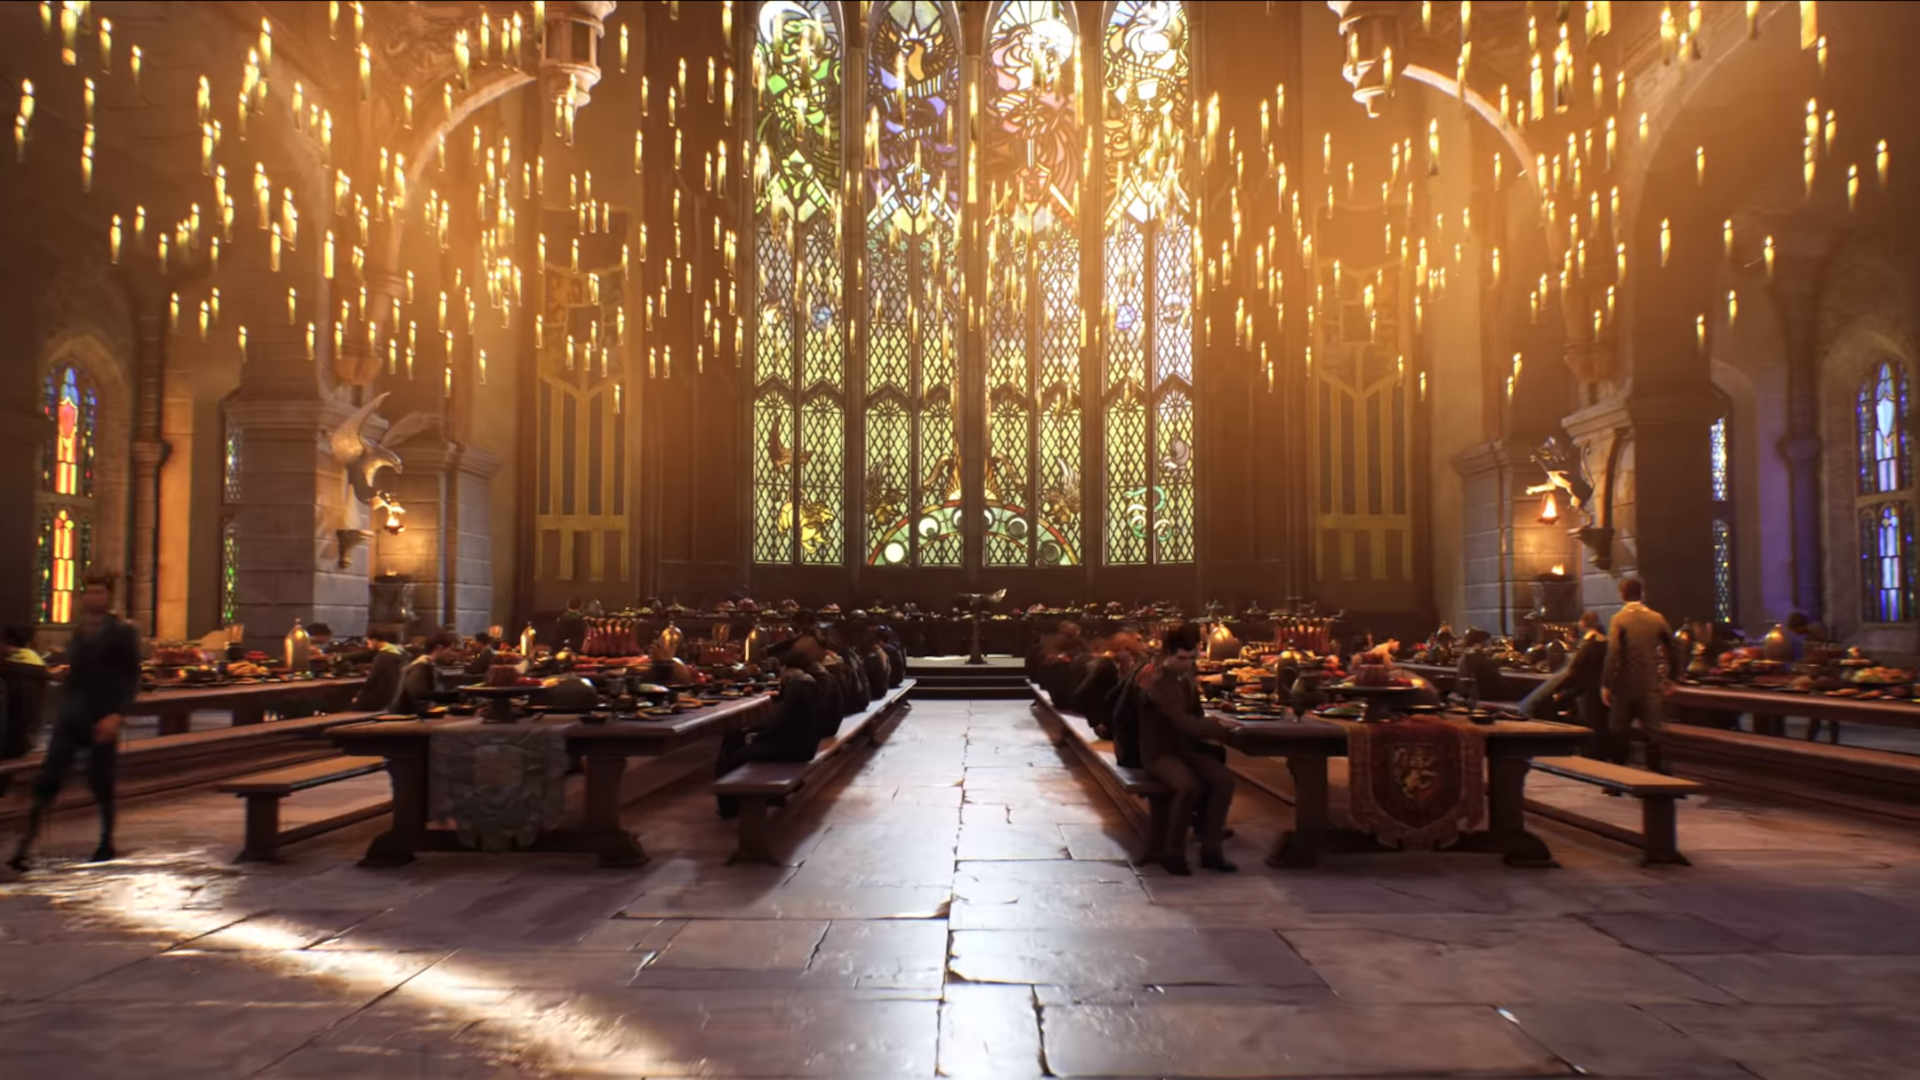 Students sitting in the main hall of Hogwarts